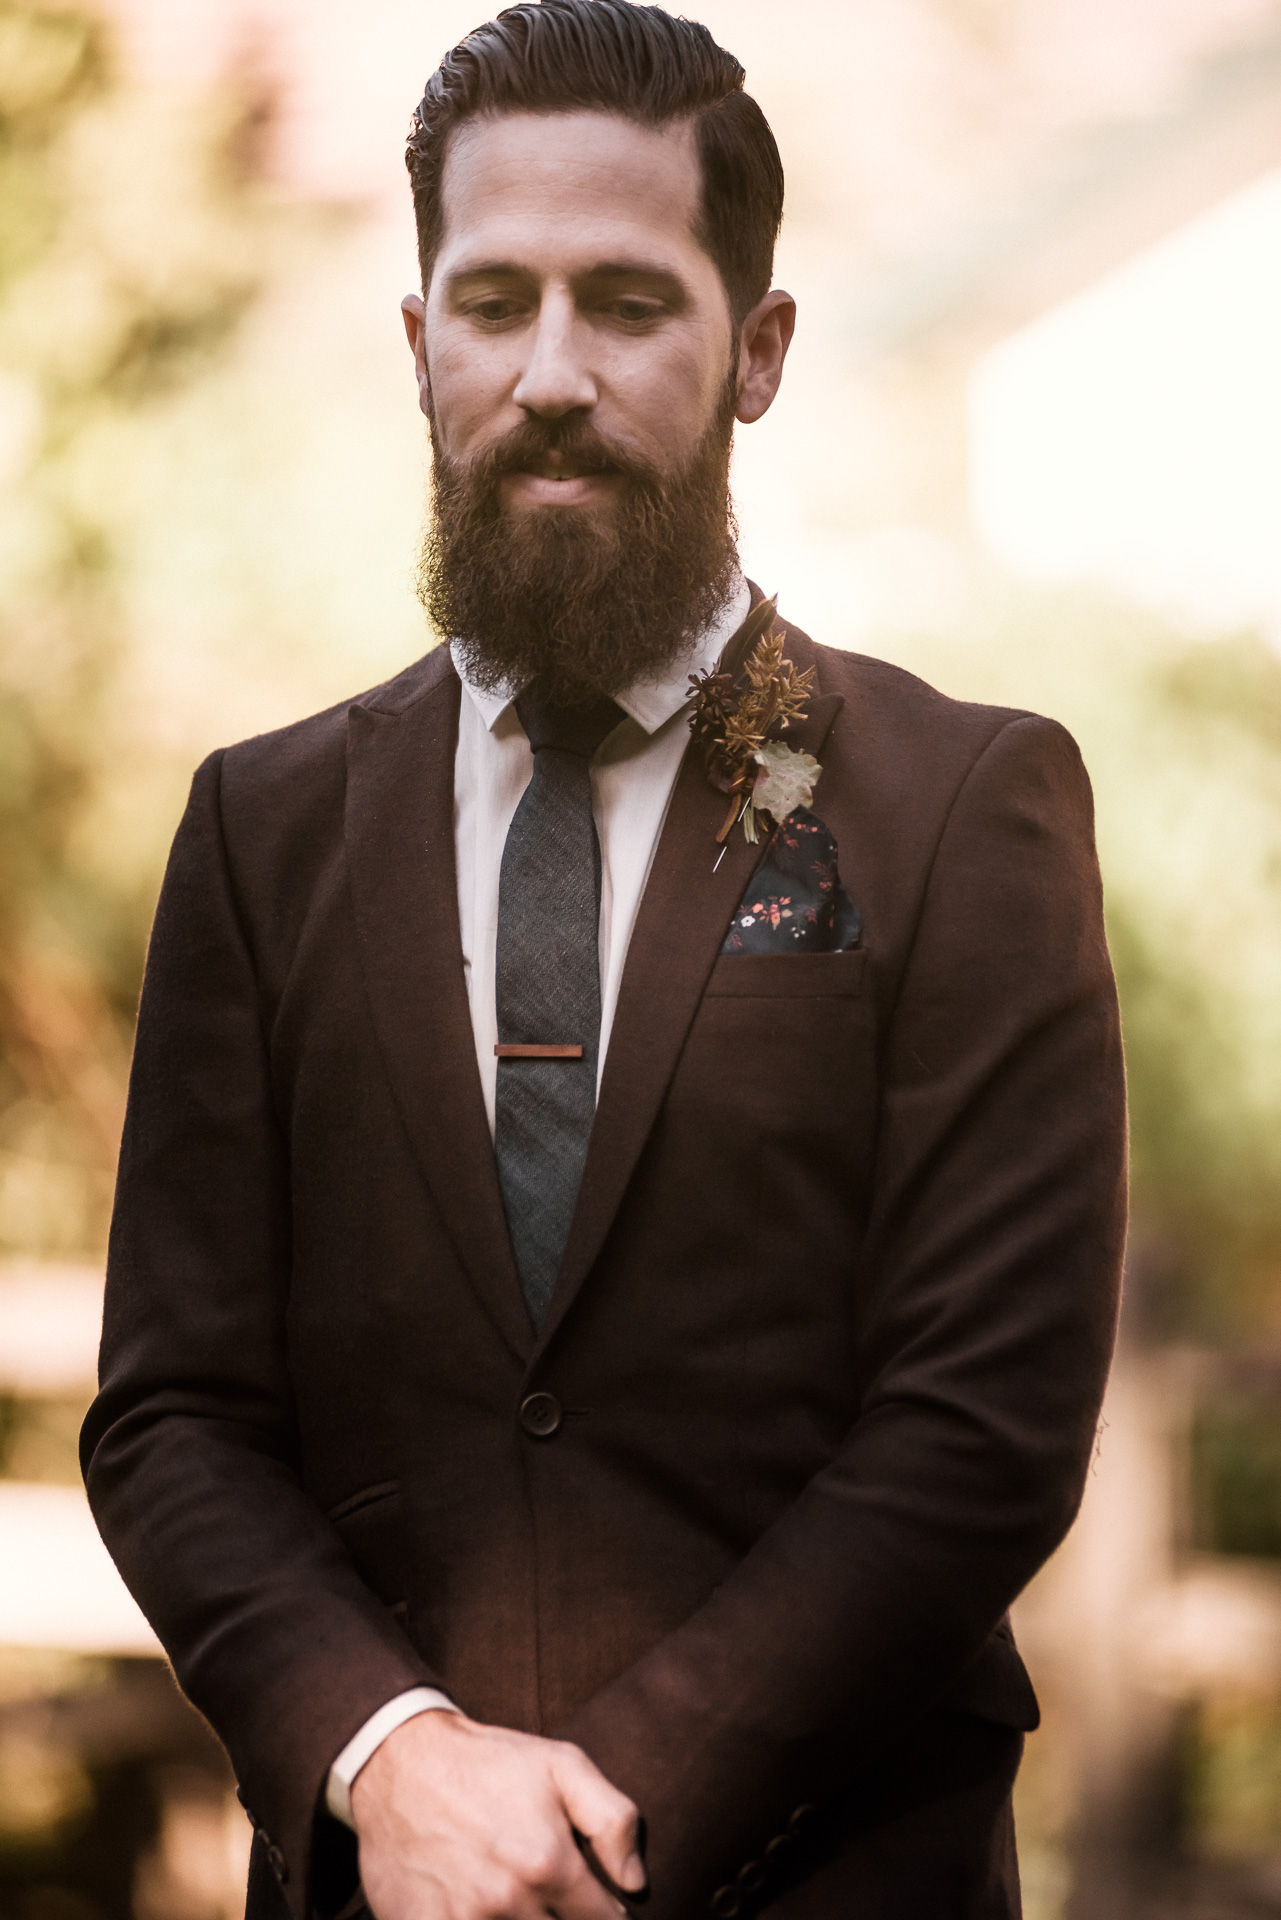 bearded groomsmen in burgandy tux walks down the aisle shot by wedding photographer at the charming St. George Hotel in Volcano California